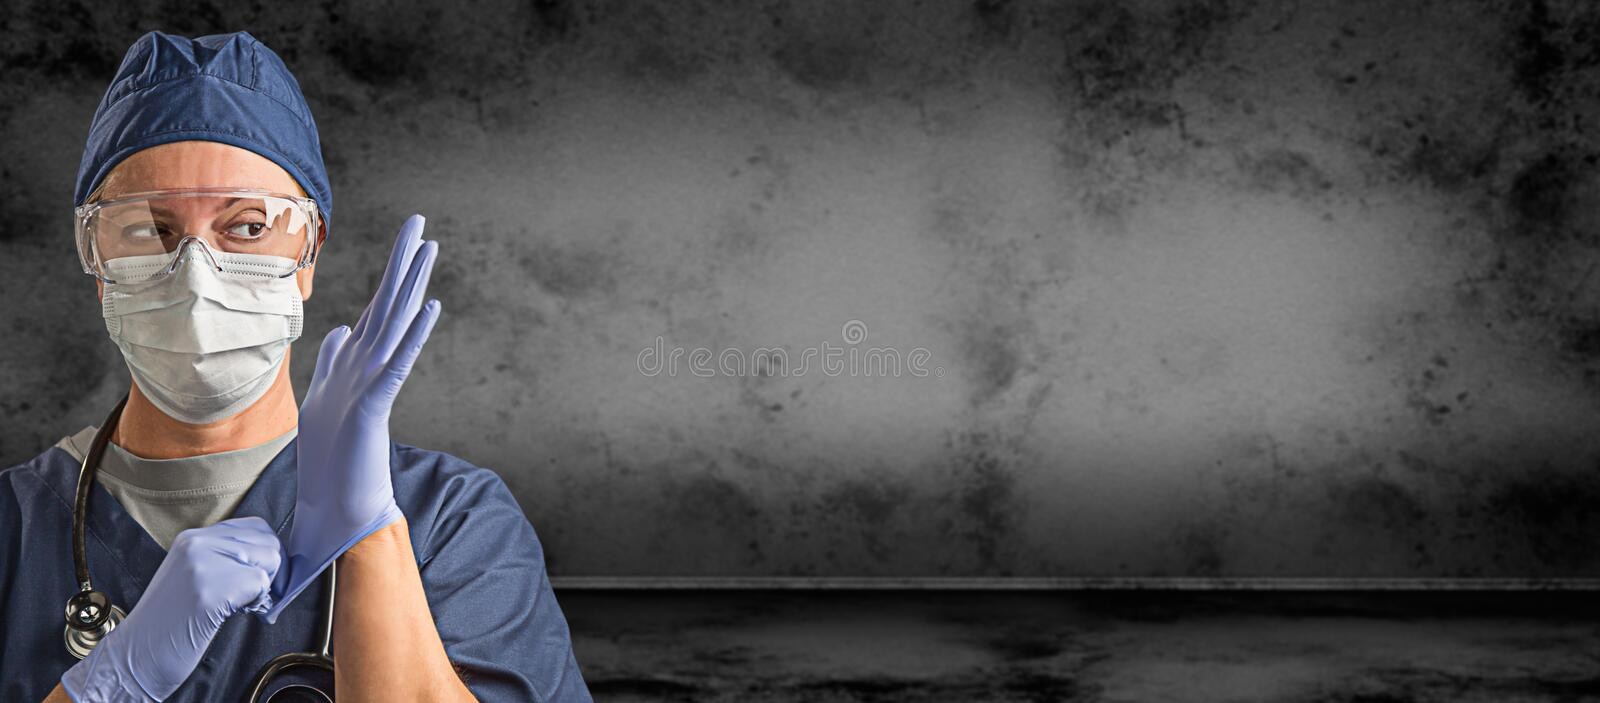 Female Doctor or Nurse Wearing Goggles, Surgical Gloves and Face Mask Against Grungy Dark Background Banner stock images